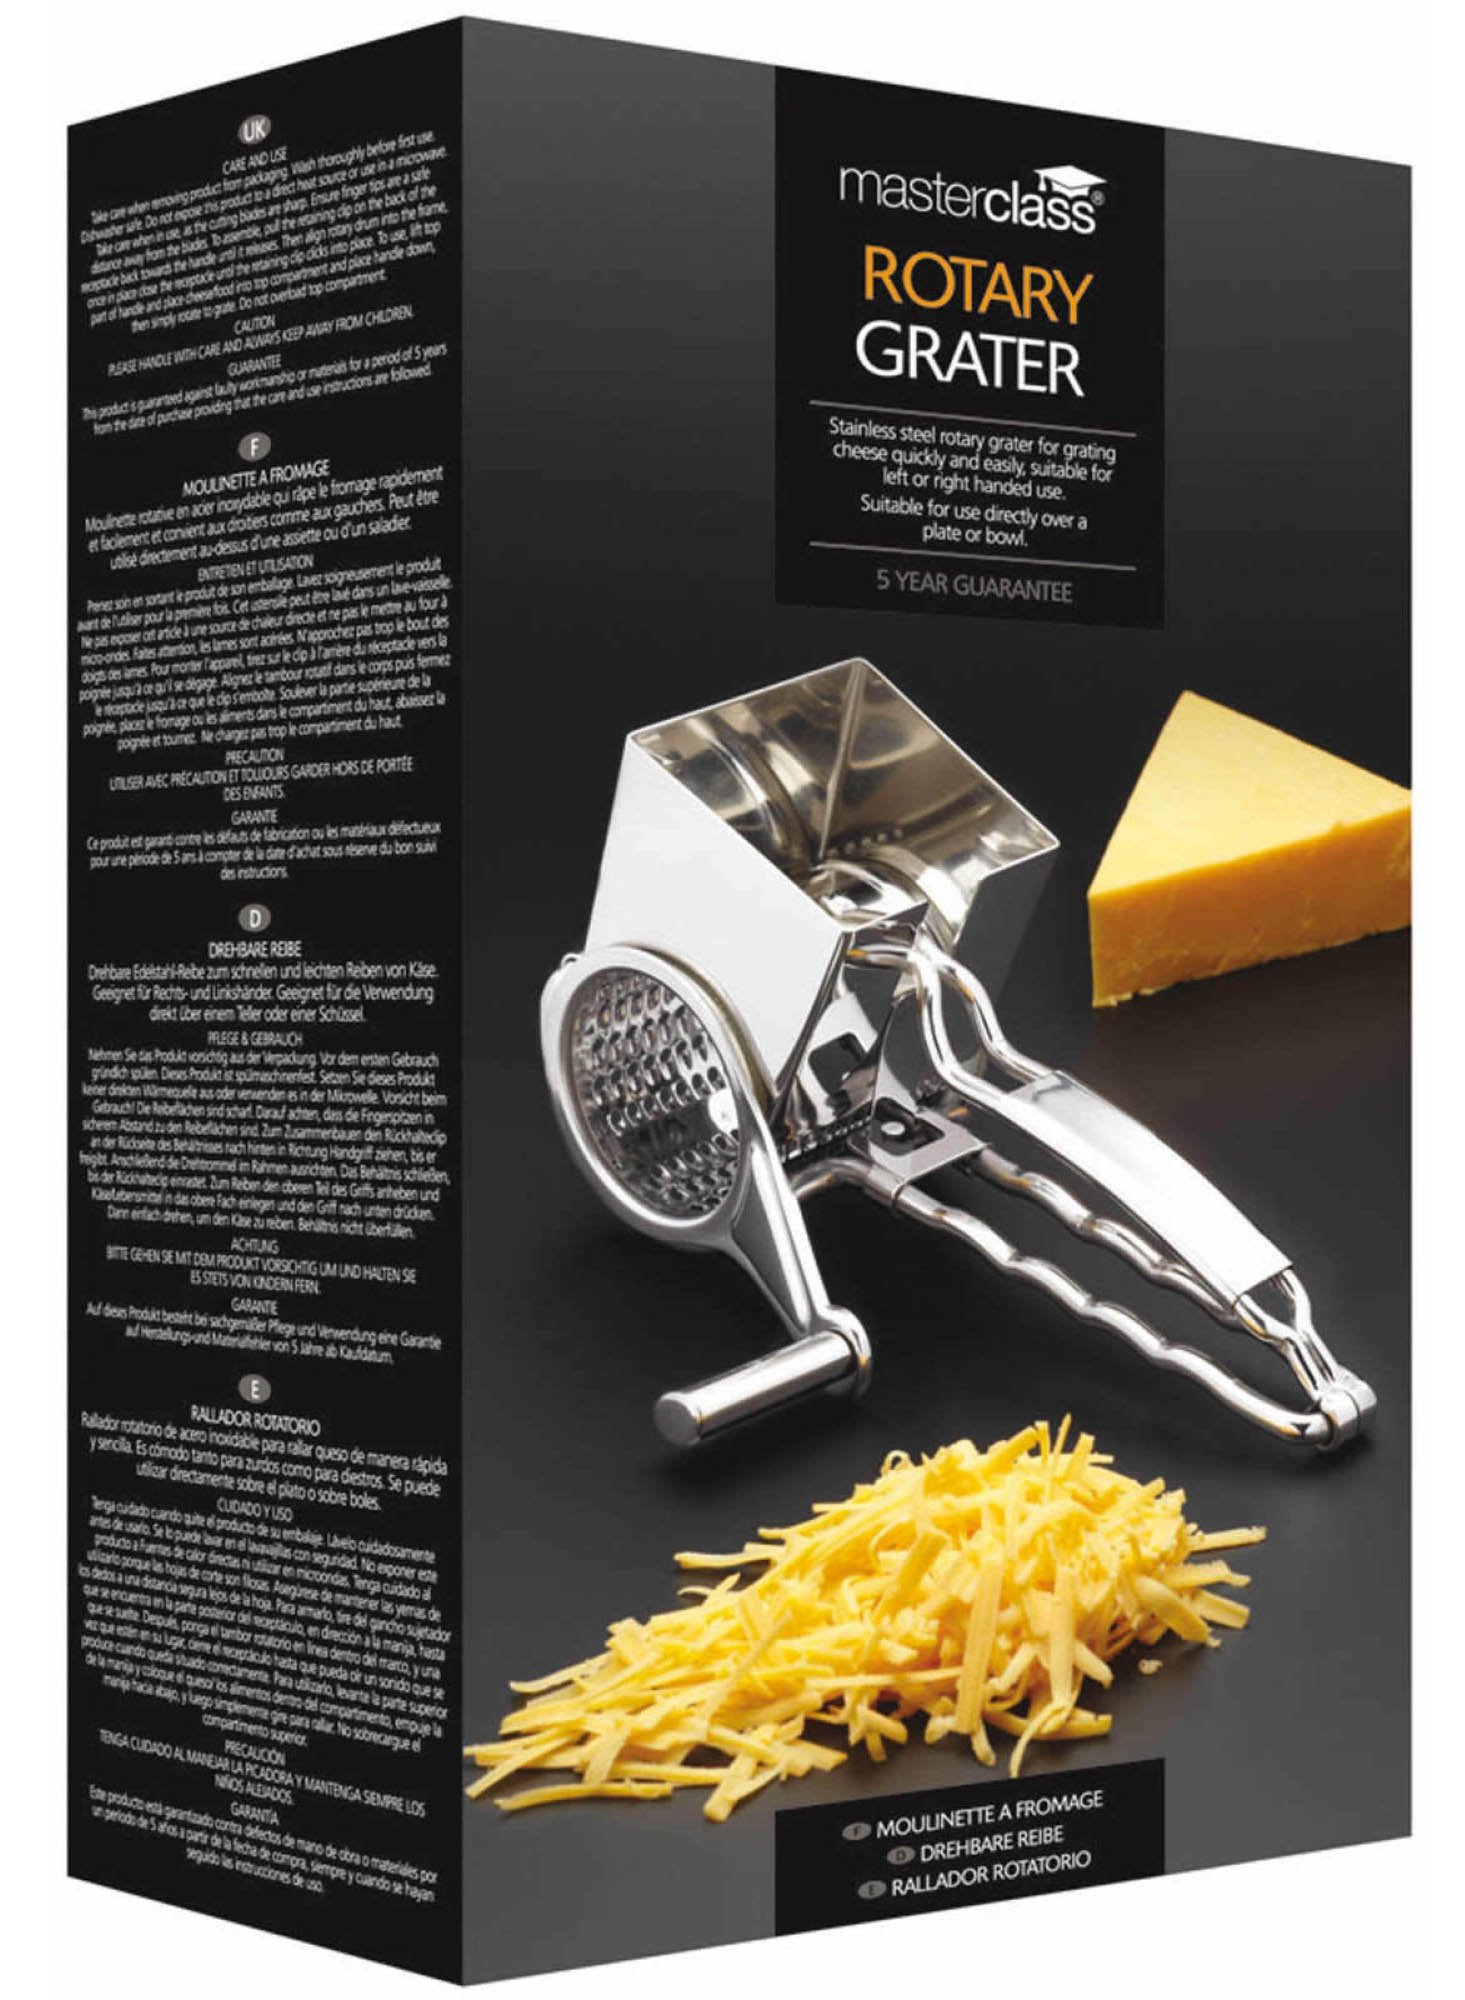 Masterclass Stainless Steel Rotary Cheese Grater At